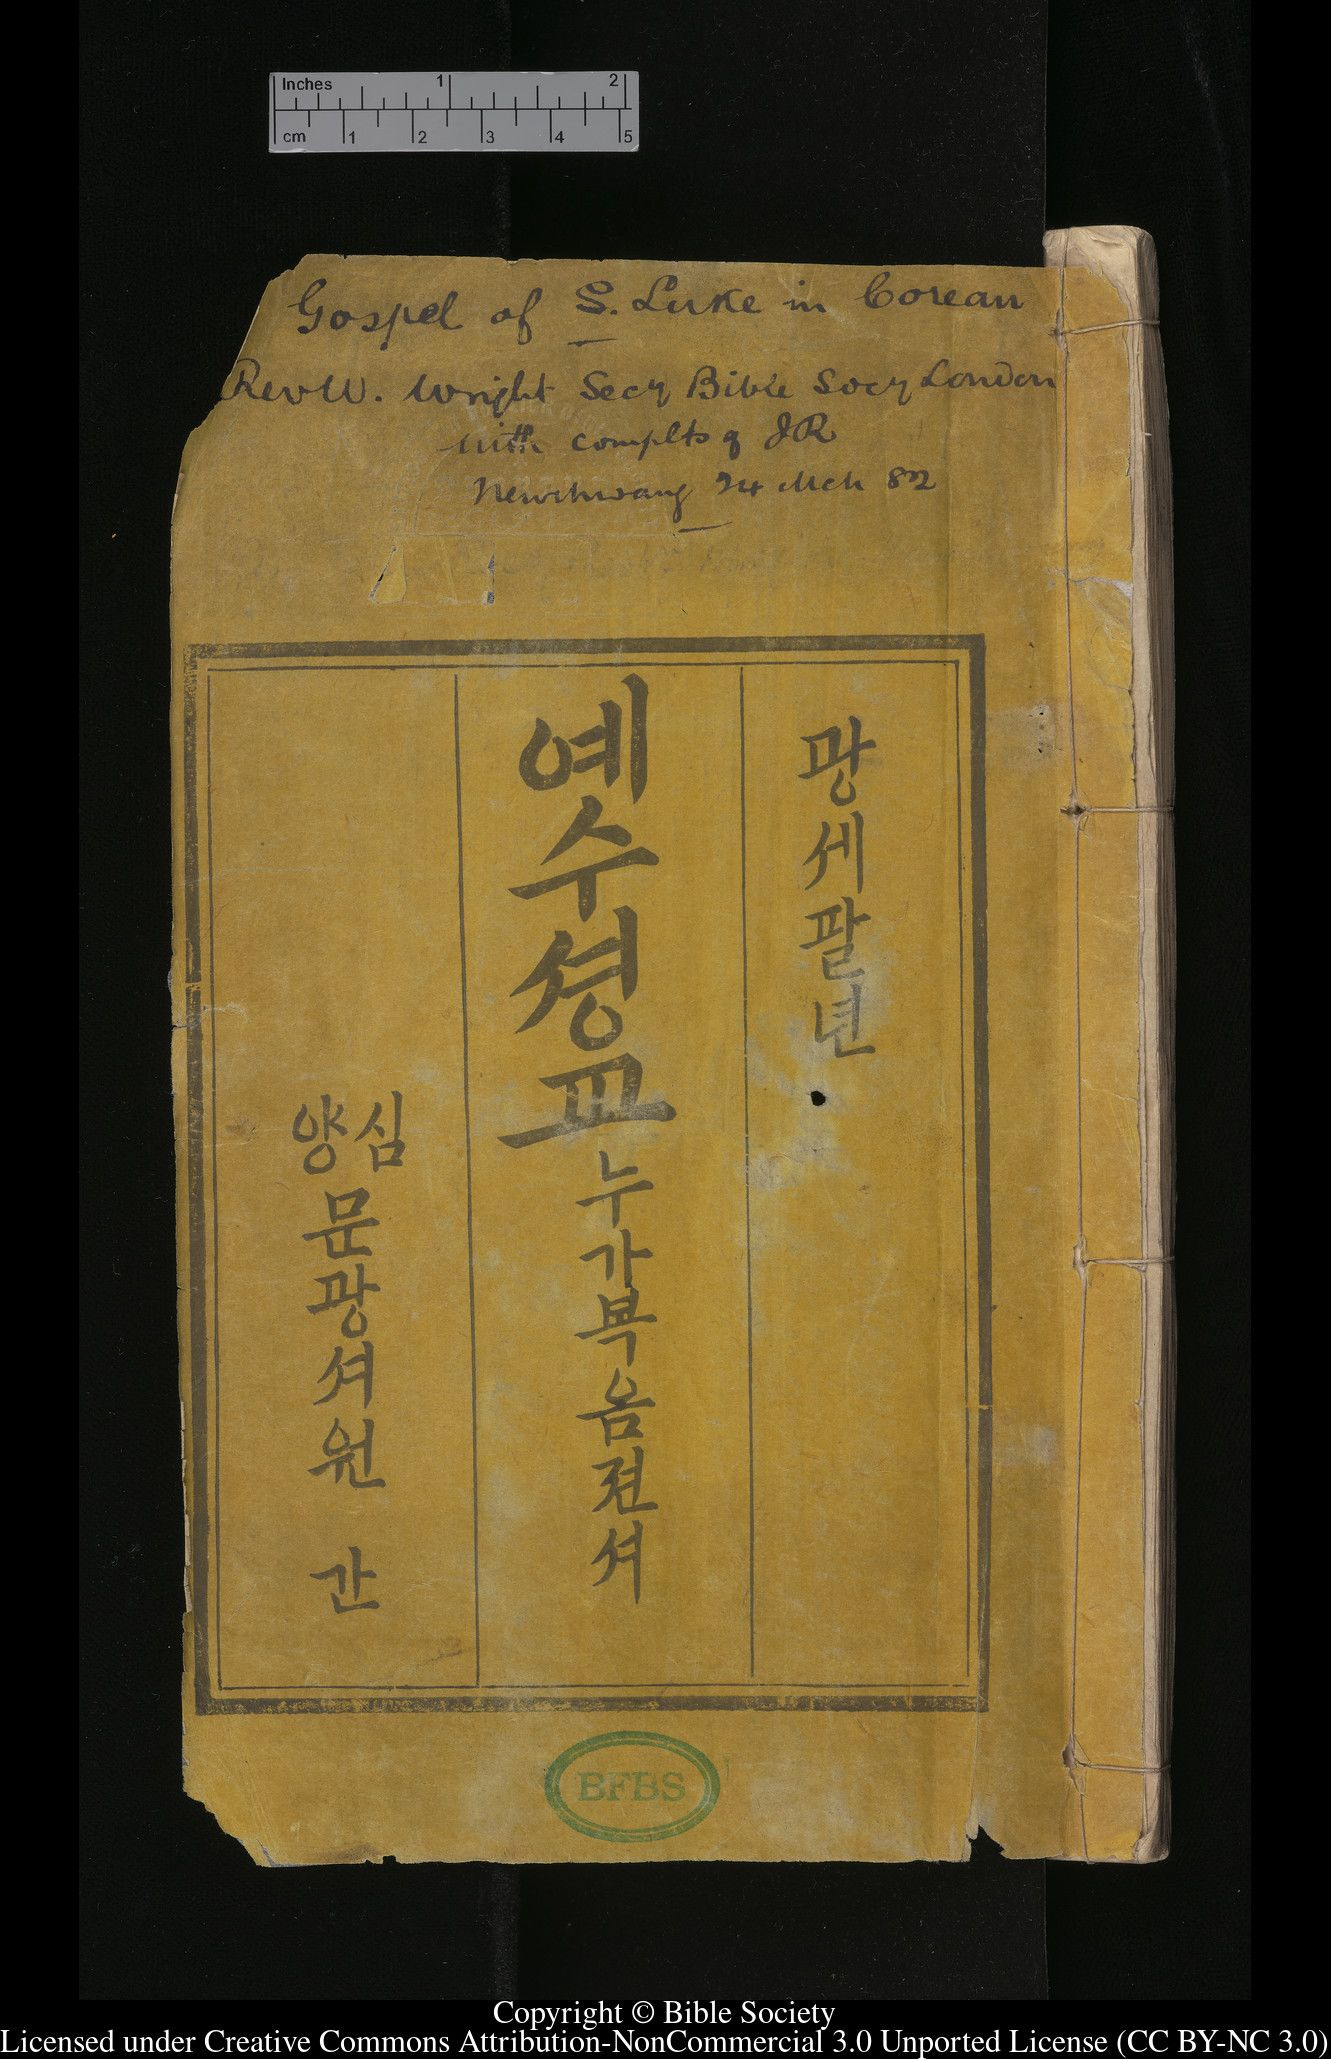 World's oldest Korean Bibles at Cambridge University Library